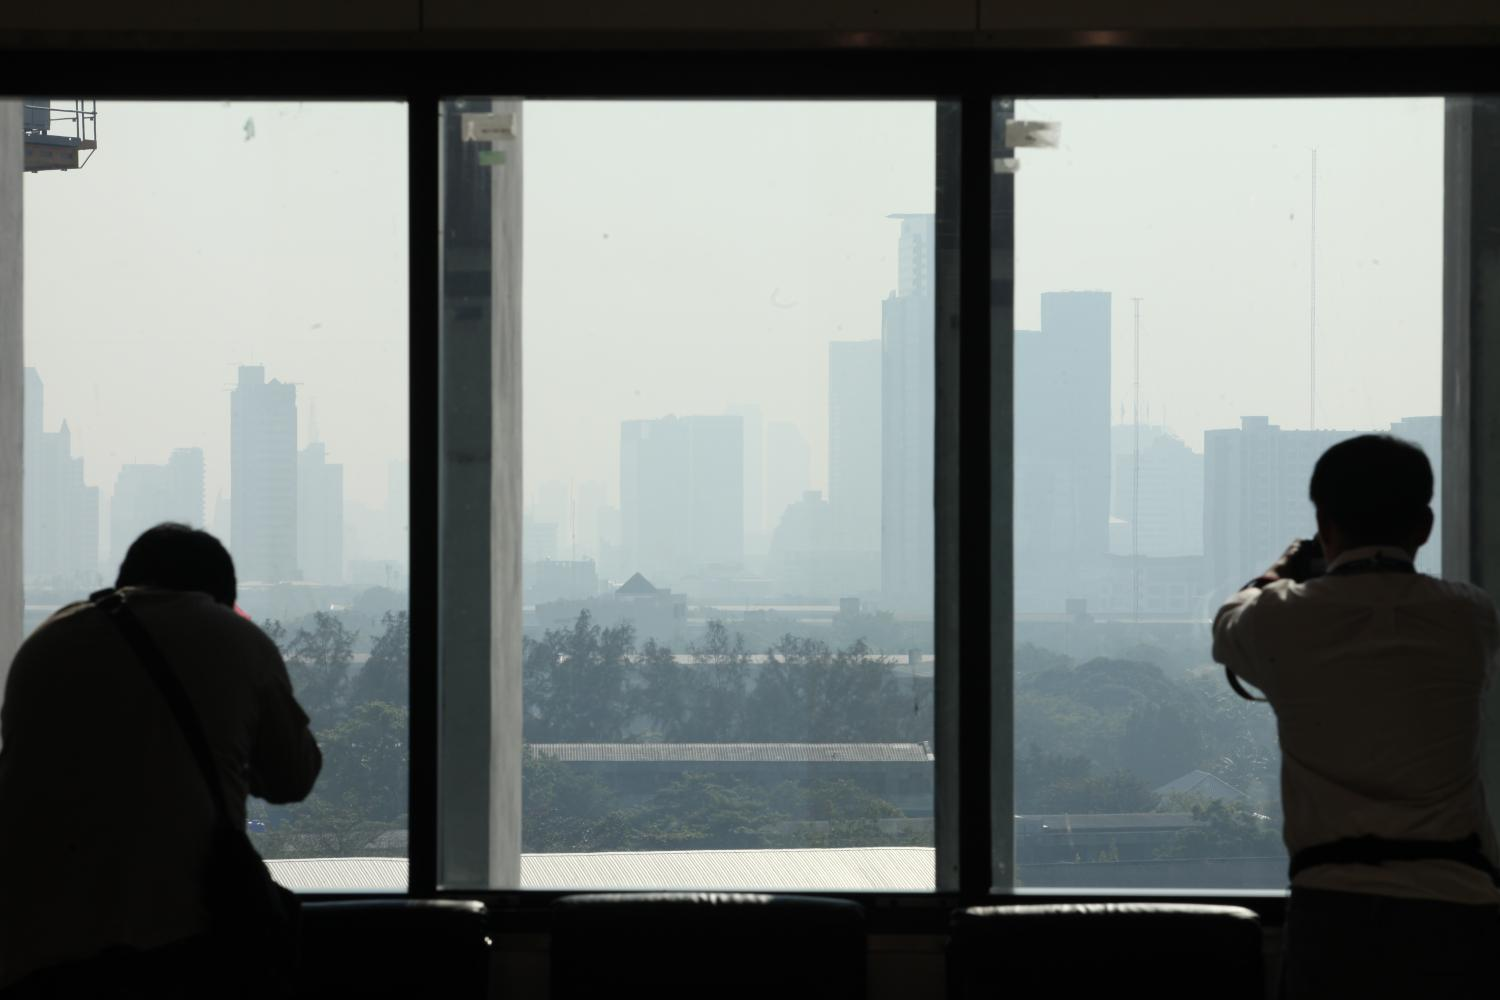 Two photographers take photos of high-rise buildings shrouded in PM2.5 smog from parliament hall on Thursday. (Photo by Apichart Jinakul)